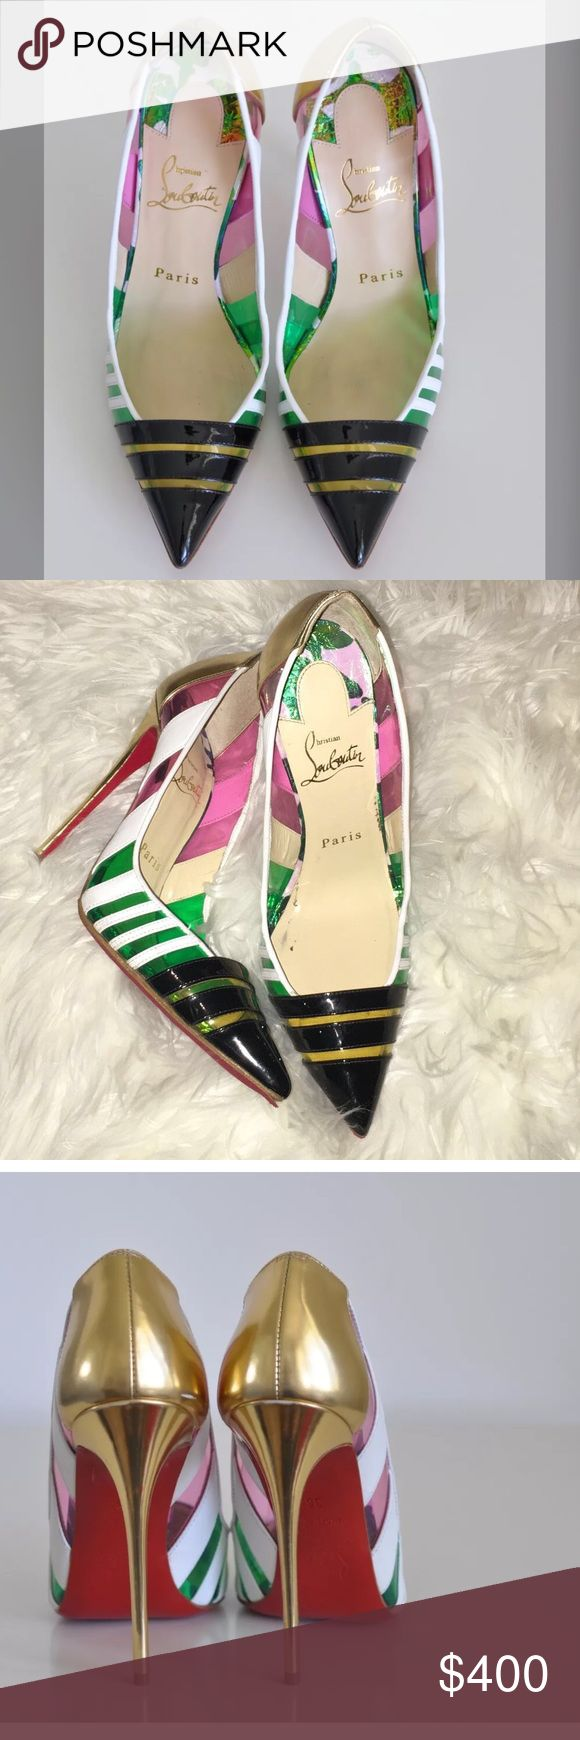 Authentic Christian louboutin bandy heels These CL shoes are authentic.. the style name is Bandy.. I wore these shoes new.. looks like new..it does not come with a box but It does come with a dust bag Christian Louboutin Shoes Heels